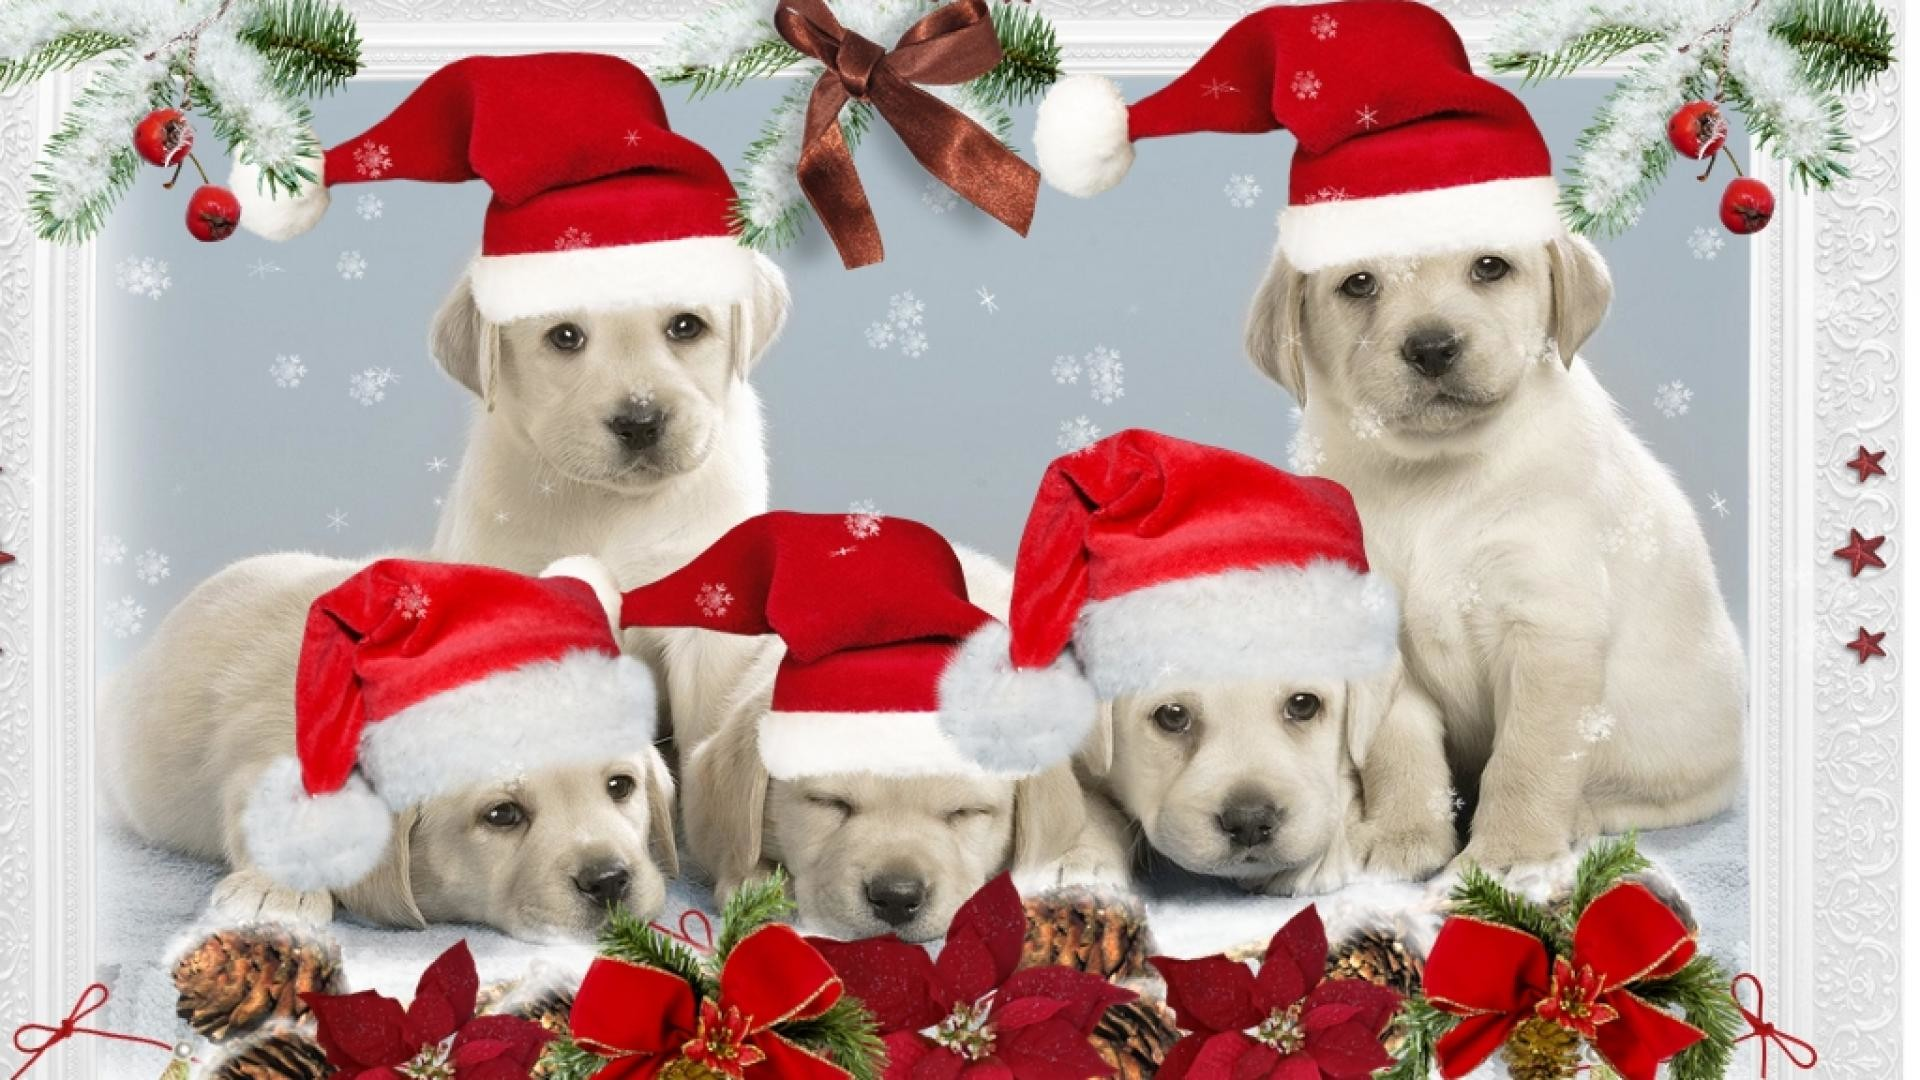 Puppy Christmas Wallpaper 60+ images